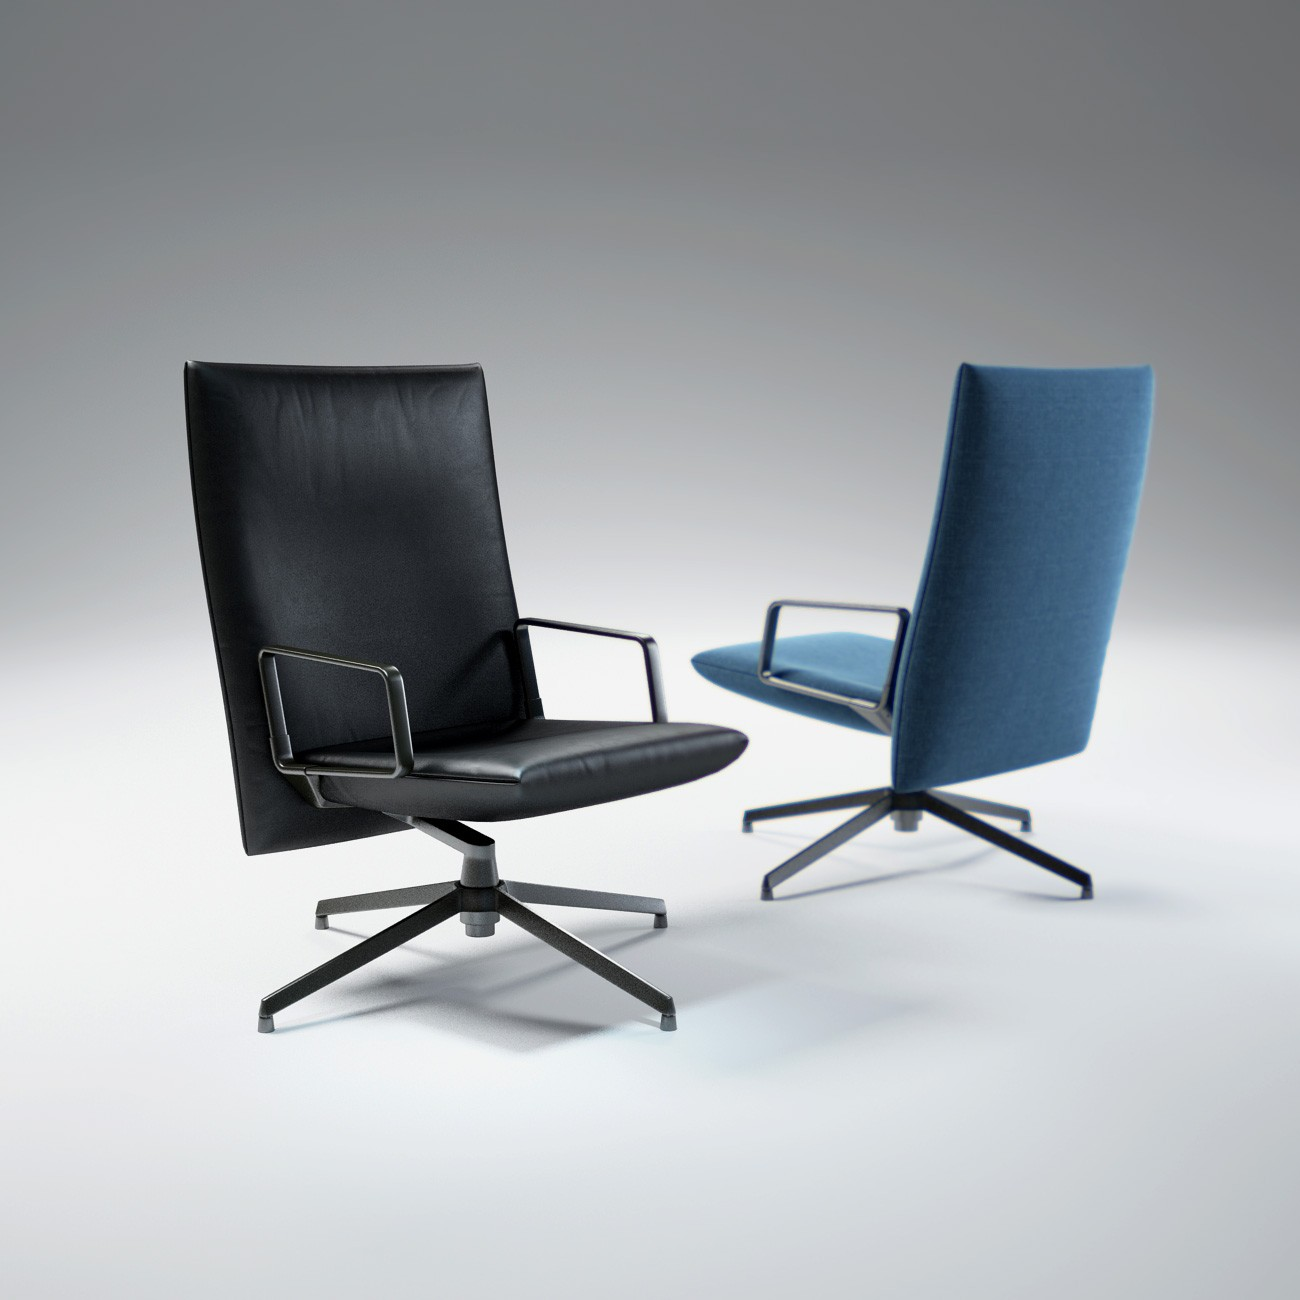 Pilot Chairs by Barber & Osgerby for Knoll